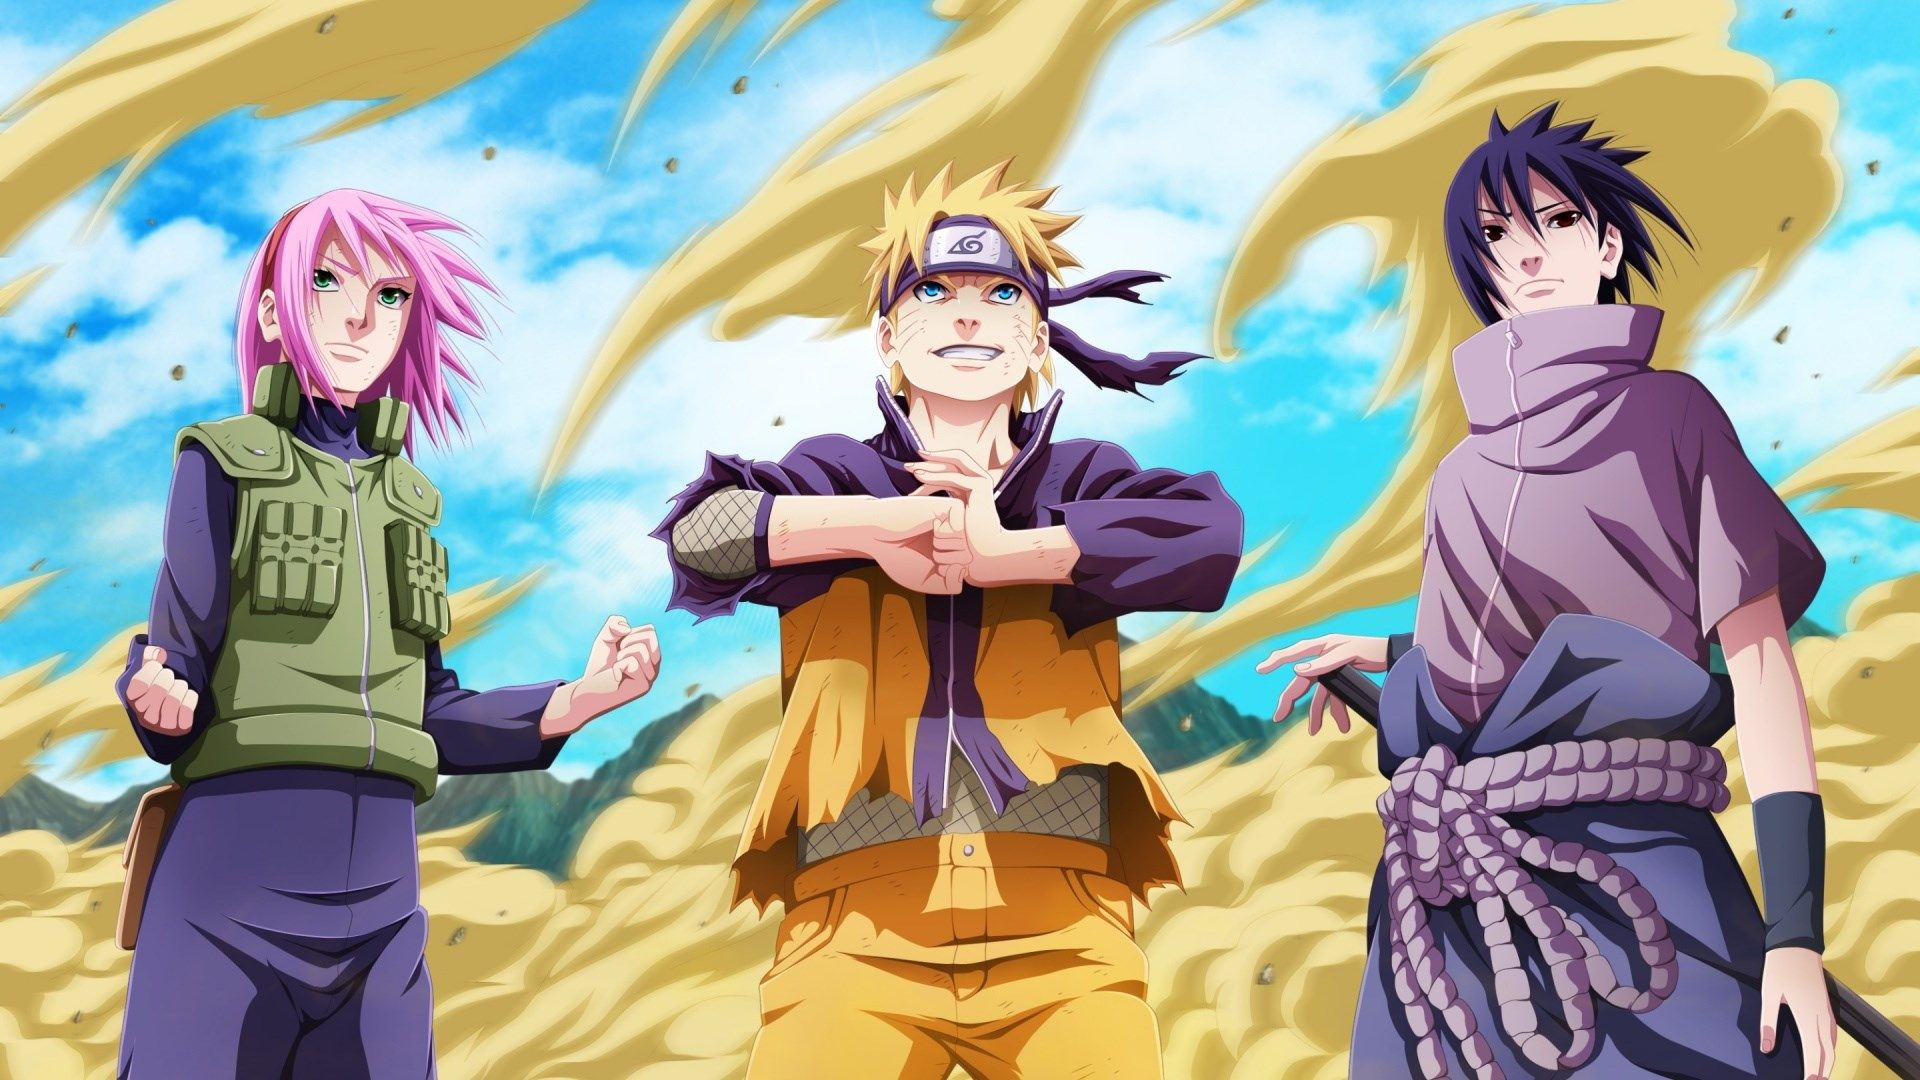 10 Facts About Your Anime That You Might Not Know Halal Navi Blog To all the people who love to see a preggie naruto or sasuke or any other male naruto character pregnant or have kids this is the group for you we accept fanfictions, drawings, memes. 10 facts about your anime that you